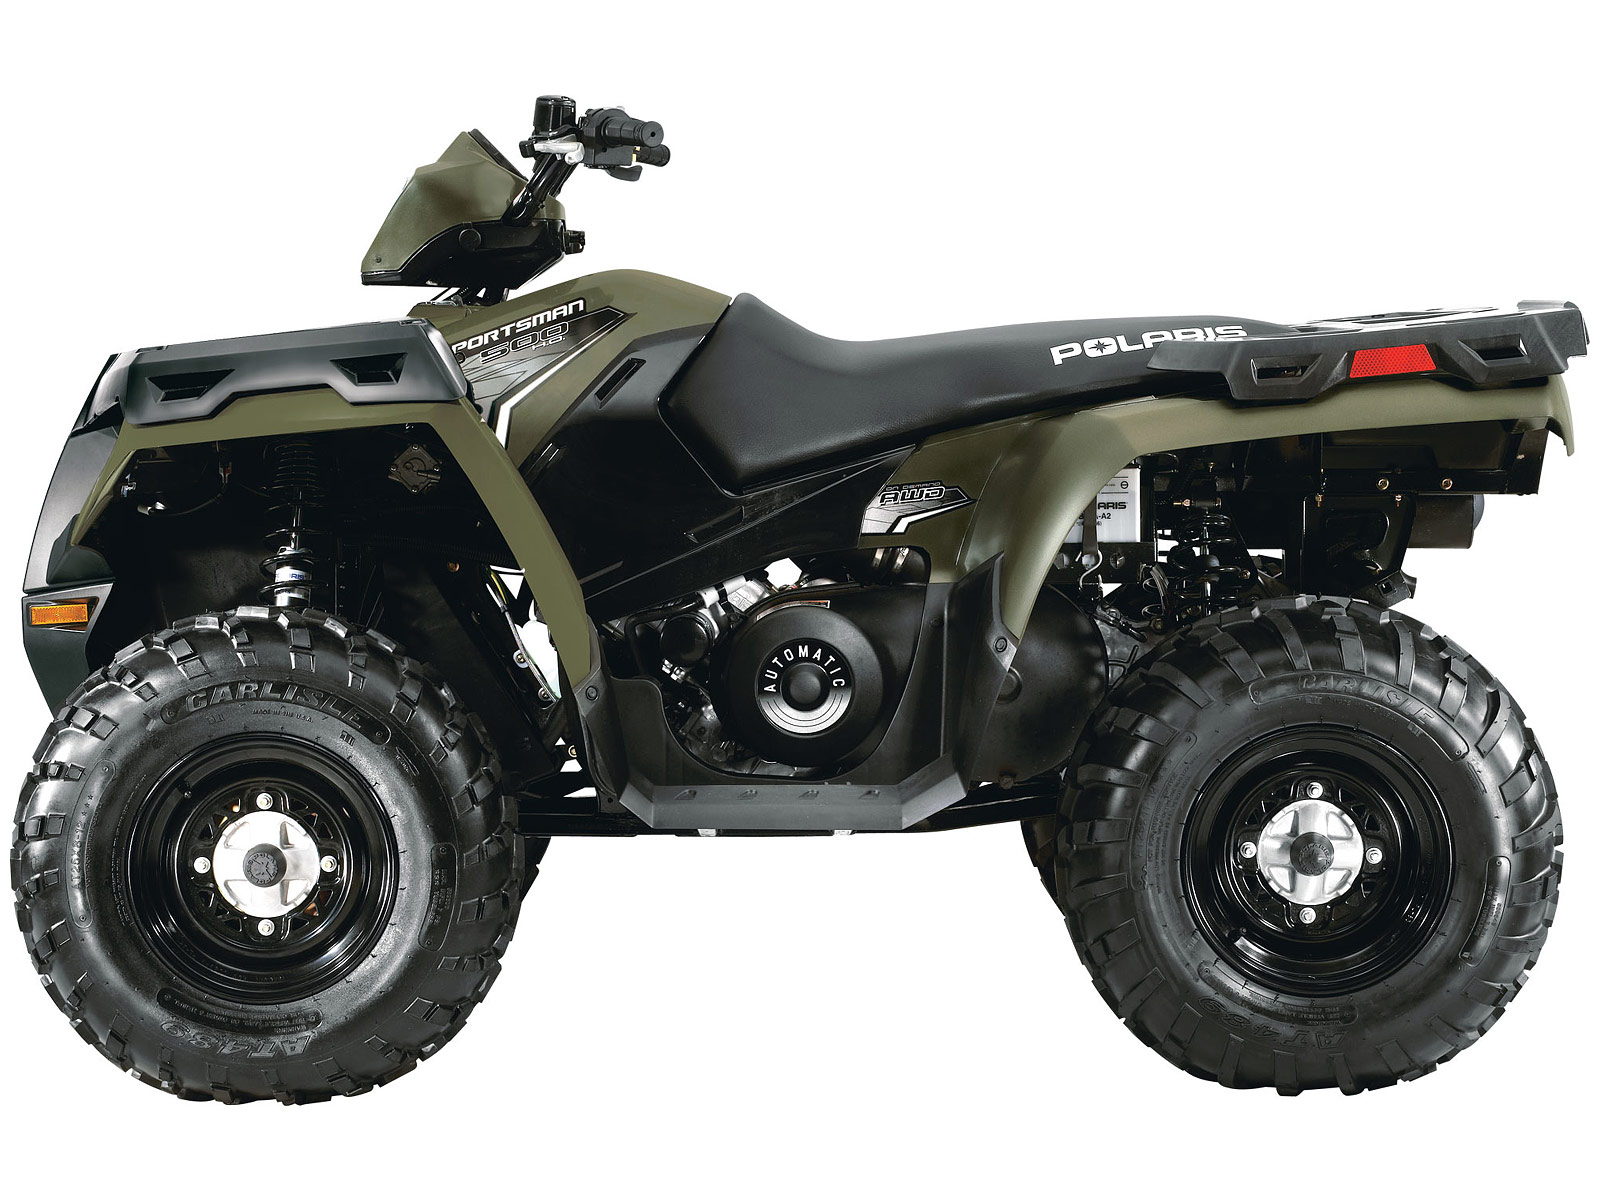 2012 Polaris Sportsman 500HO ATV Insurance Information